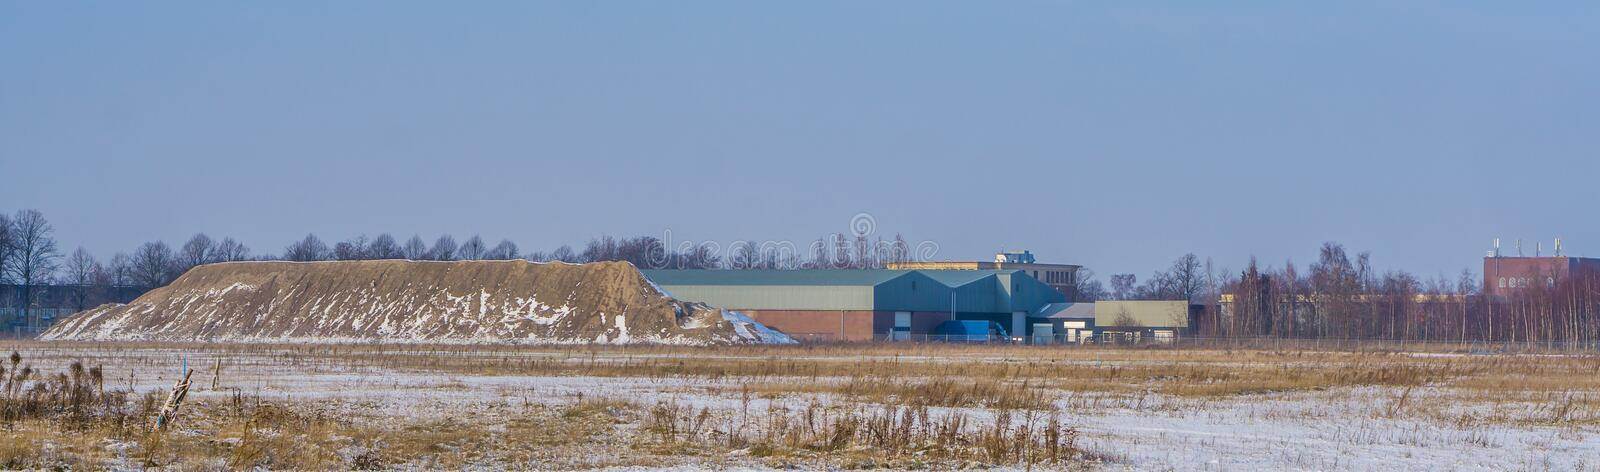 Industry zone with a sand mountain and a warehouse, Majoppeveld a dutch industrial terrain in the city of Roosendaal, The. A Industry zone with a sand mountain royalty free stock image